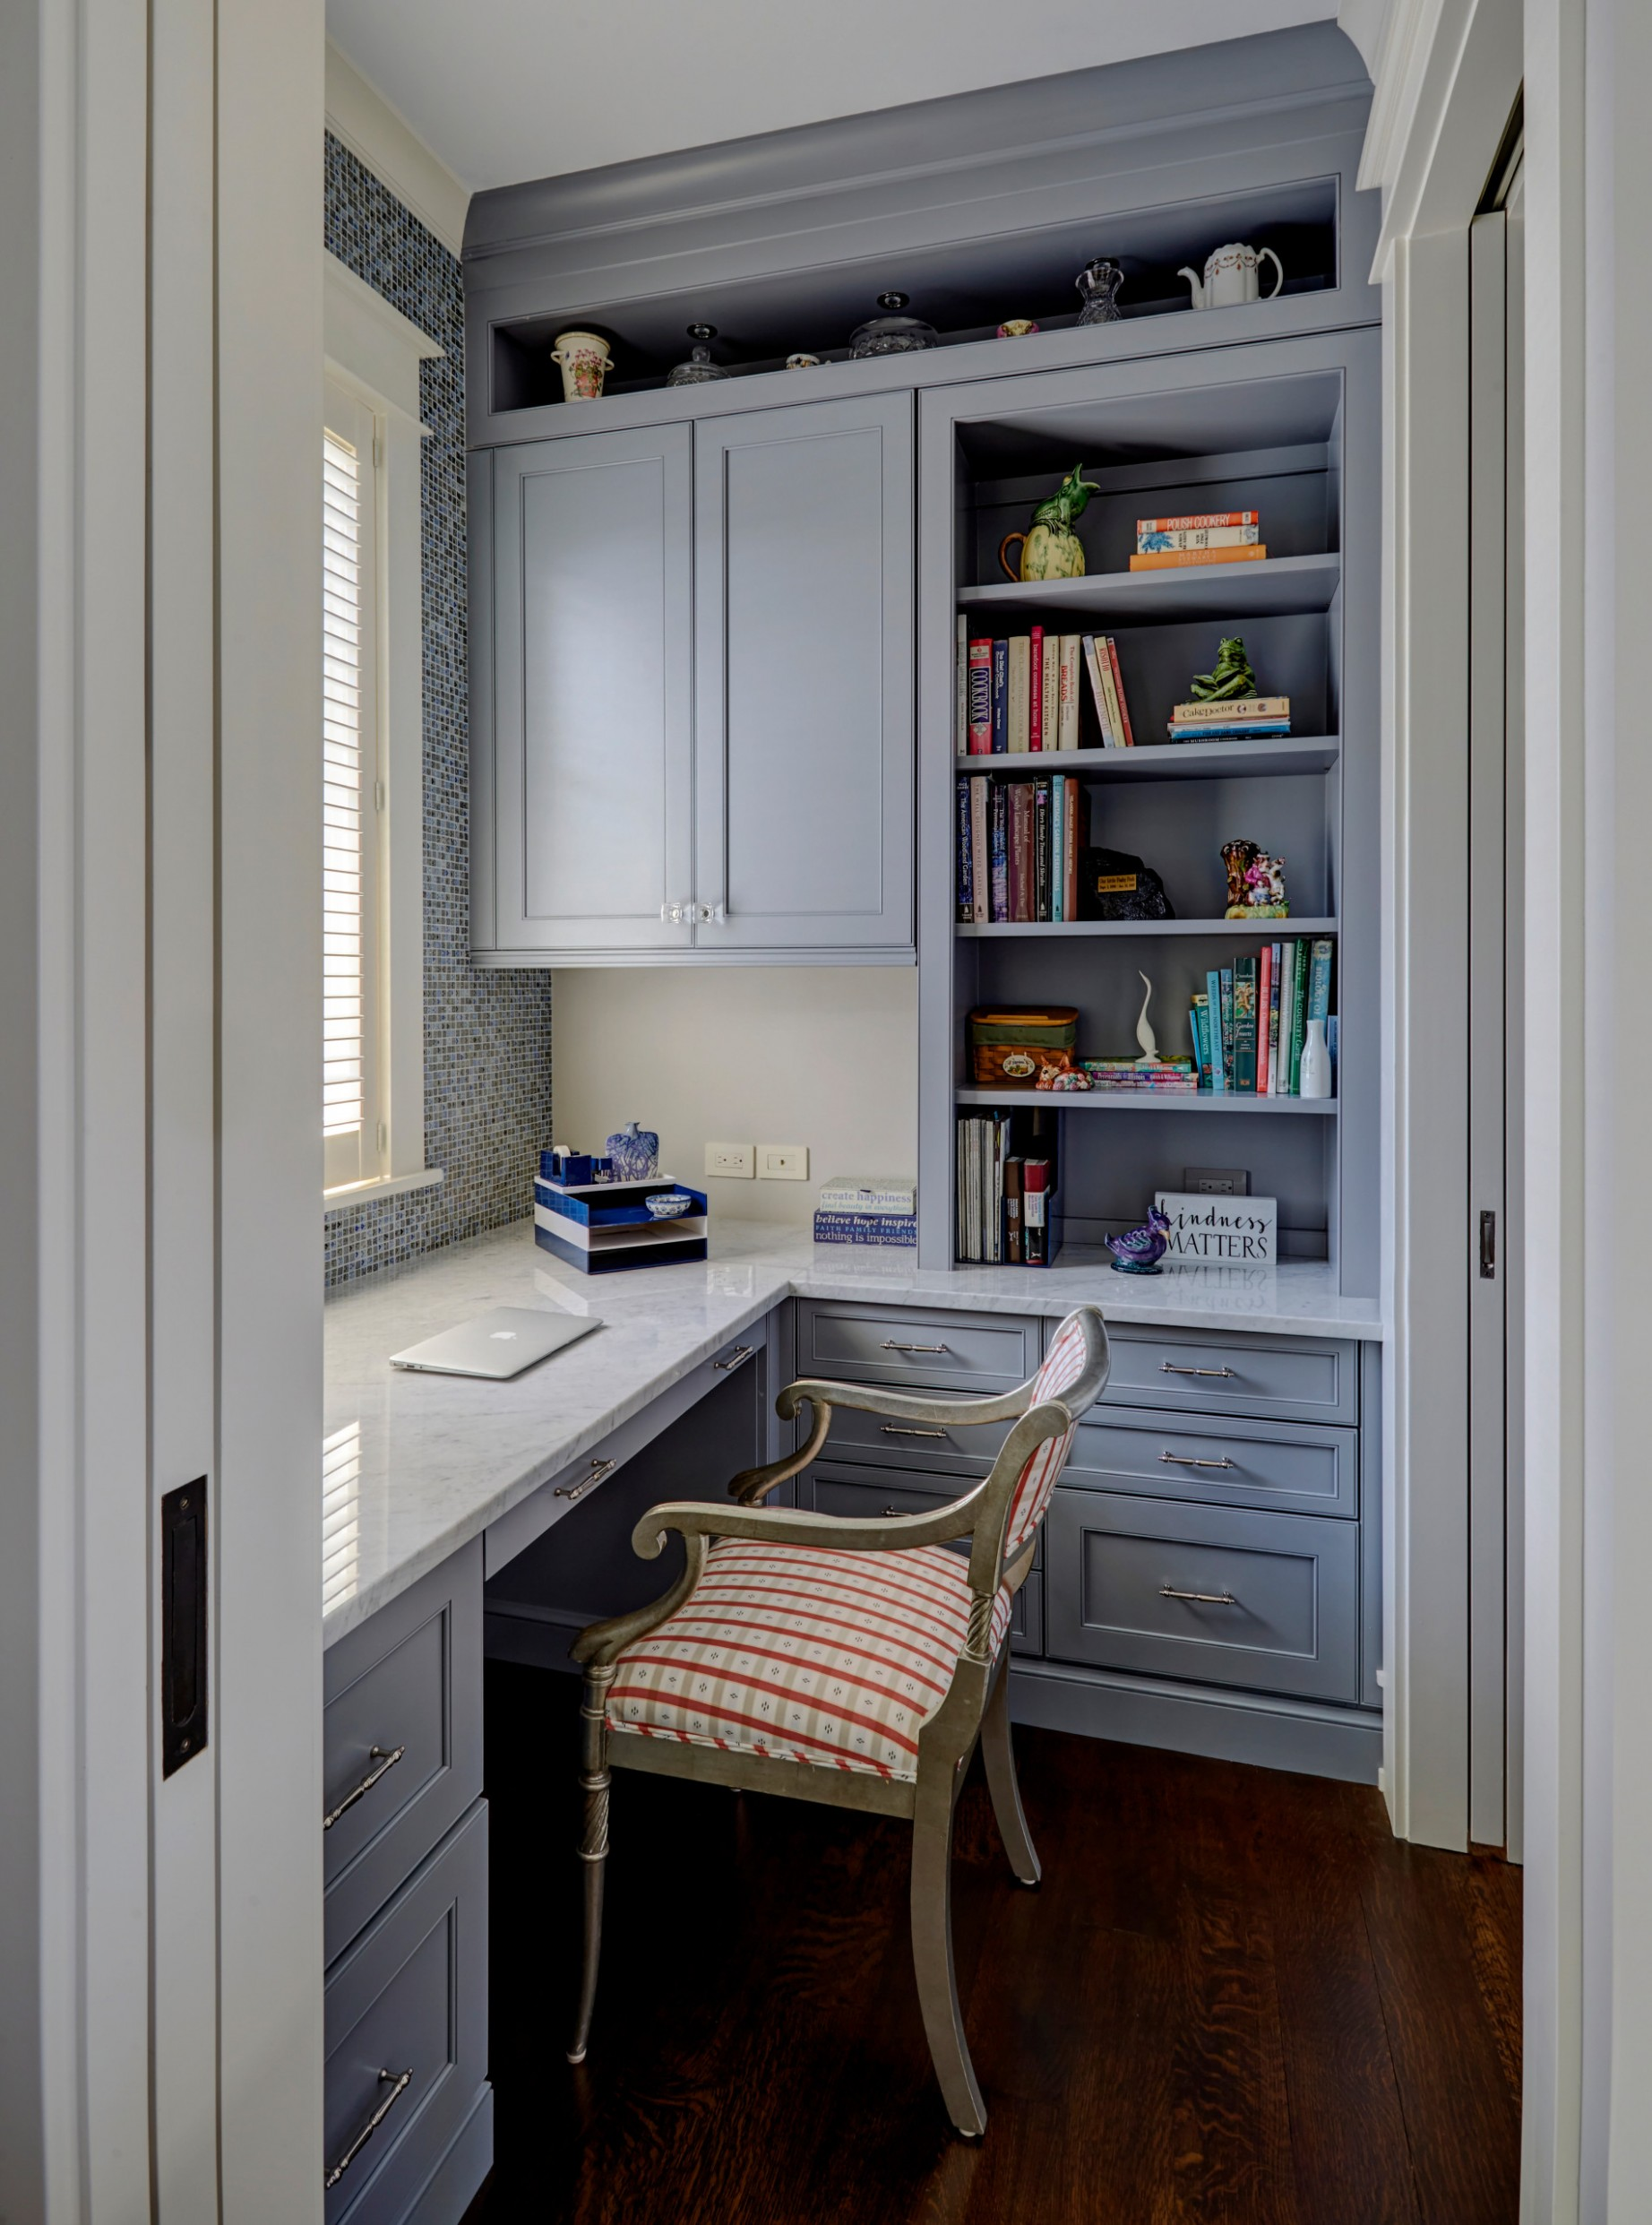 8 Beautiful Small Home Office Pictures & Ideas October 8  Houzz - Home Office Ideas Houzz